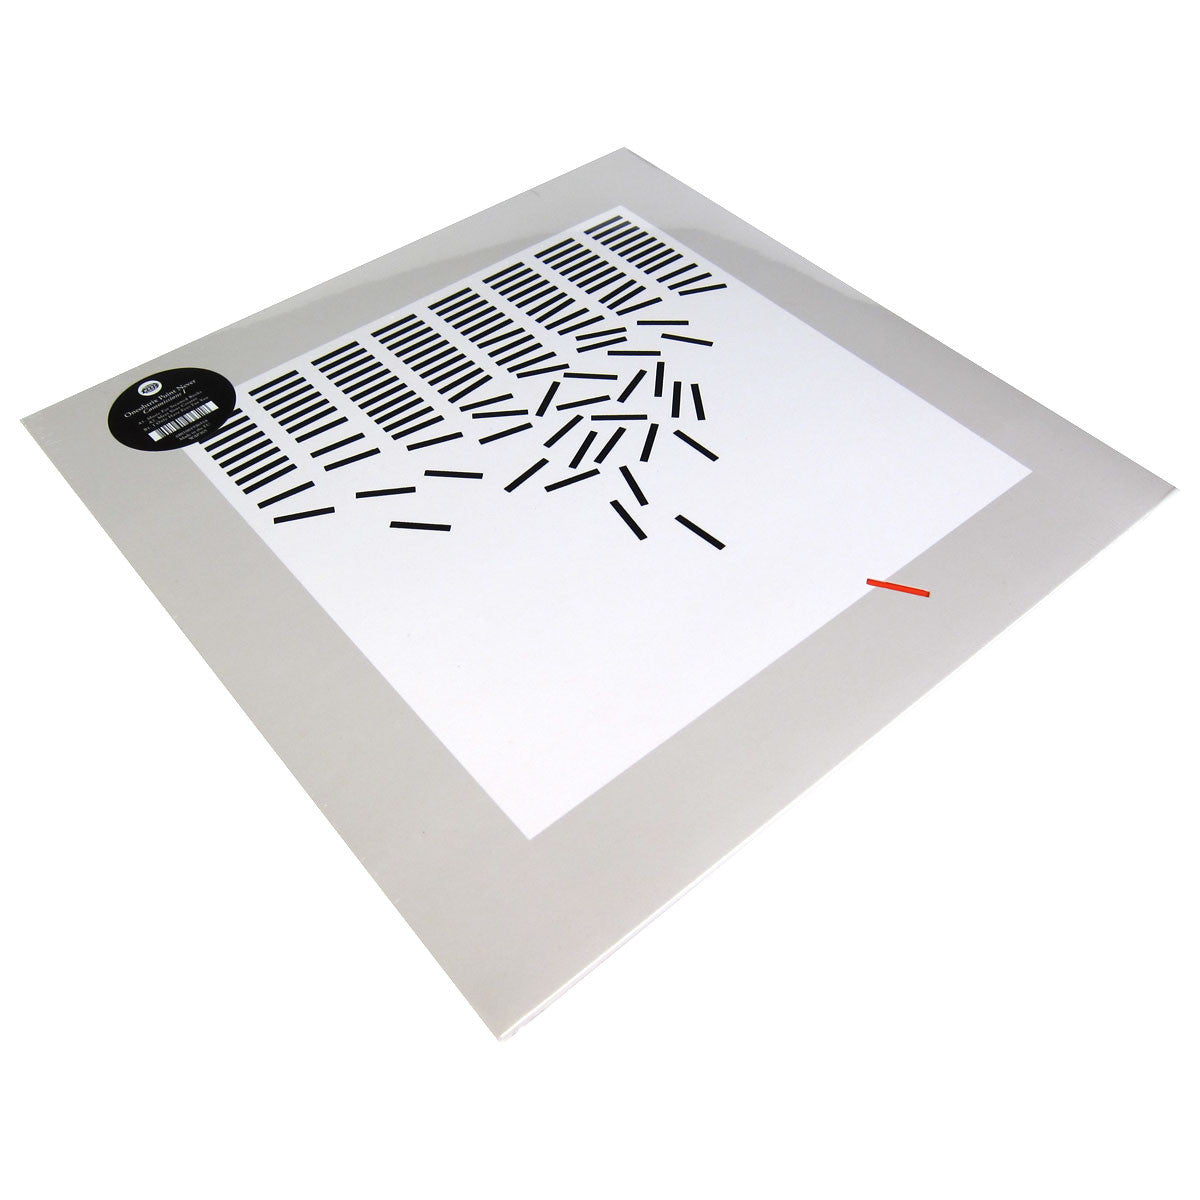 Oneohtrix Point Never: Commissions I Vinyl LP (Record Store Day 2014)